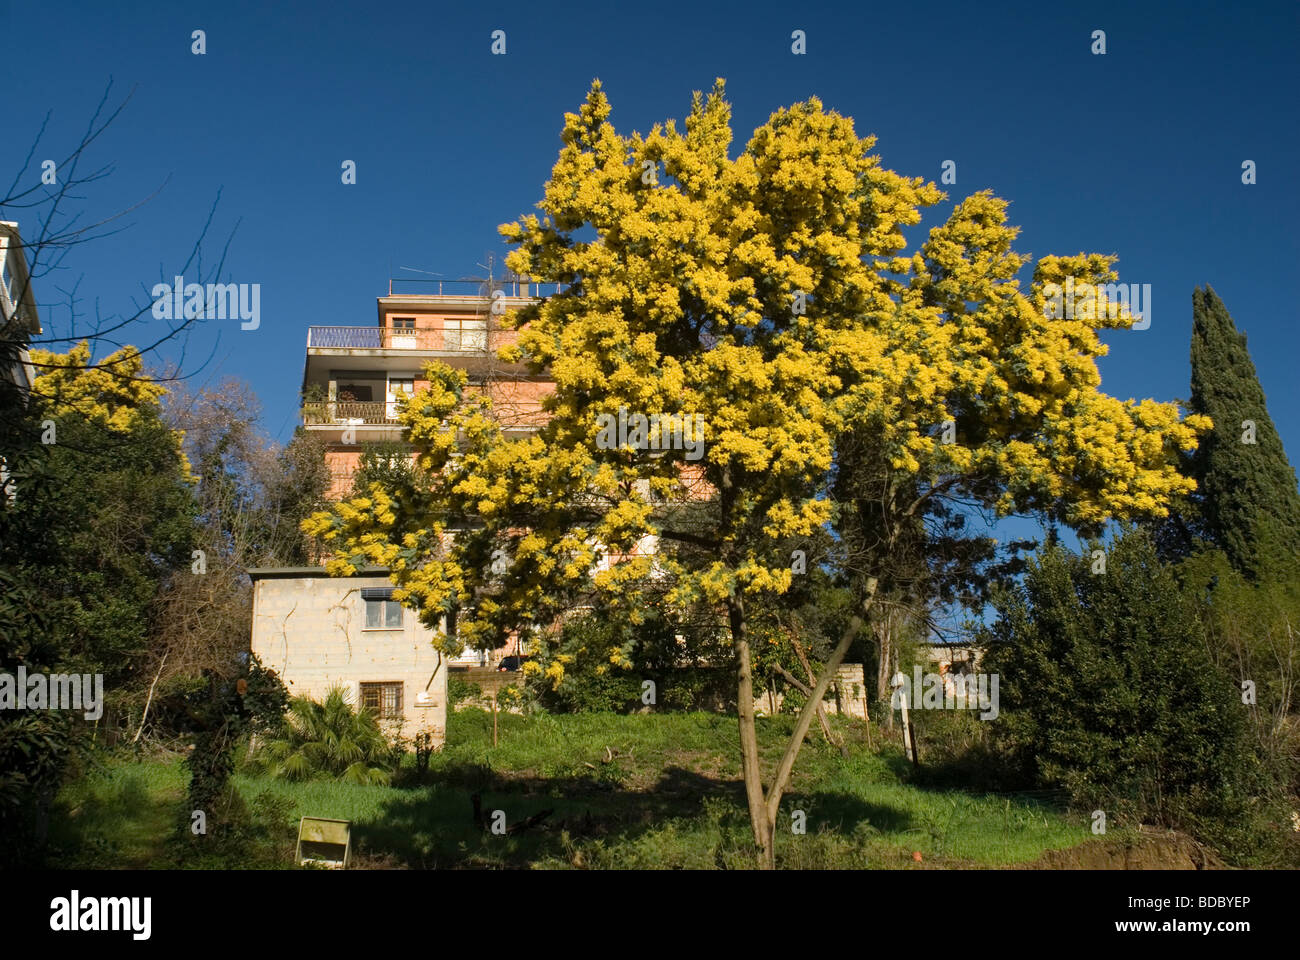 Acacia Dealbata Mimosa Leguminosae Stock Photo 25463950 Alamy